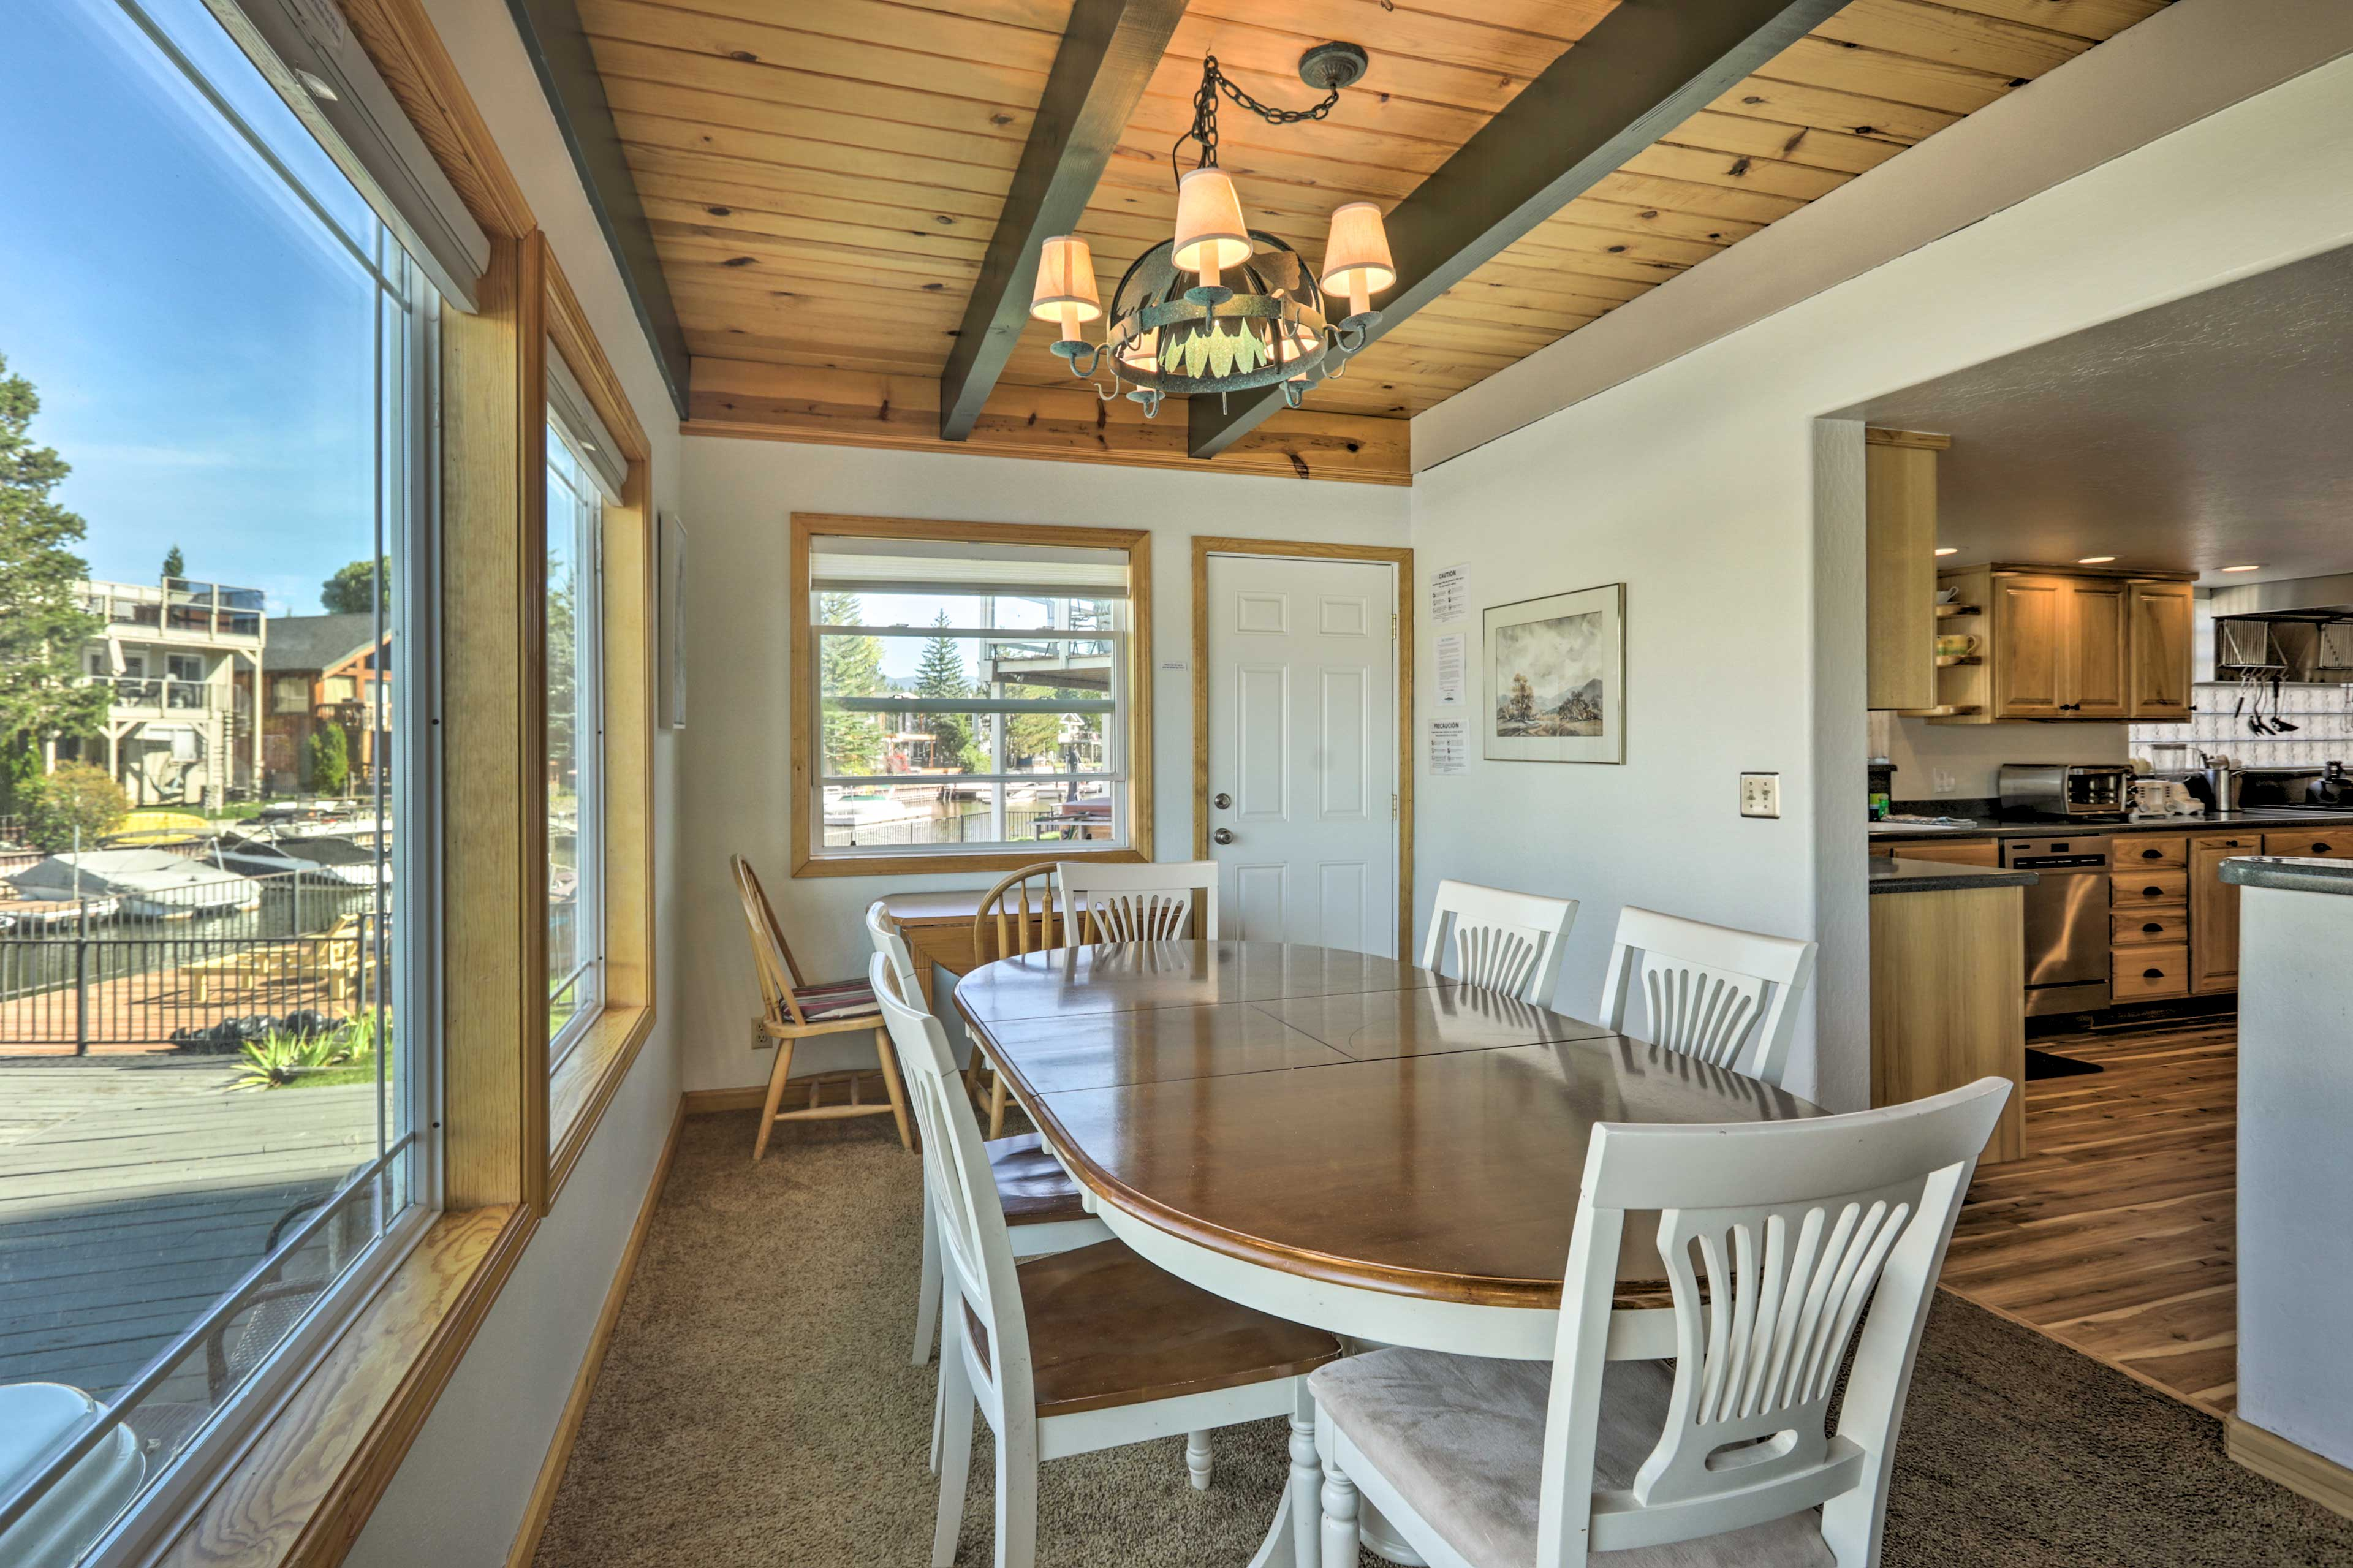 Gather around the dining table for a meal with your family.